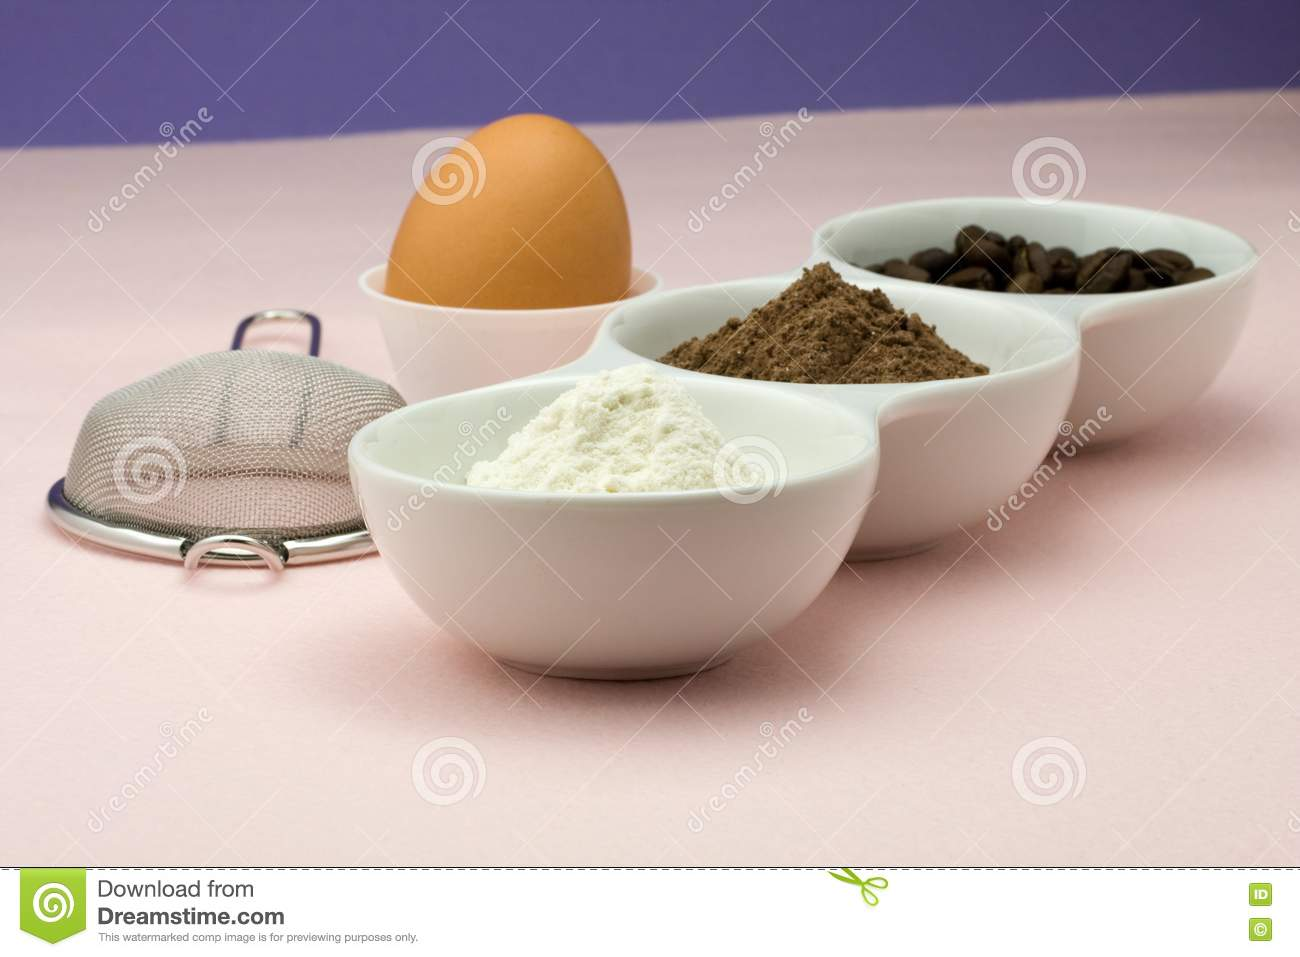 Ingredients For Homemade Cake Royalty Free Stock